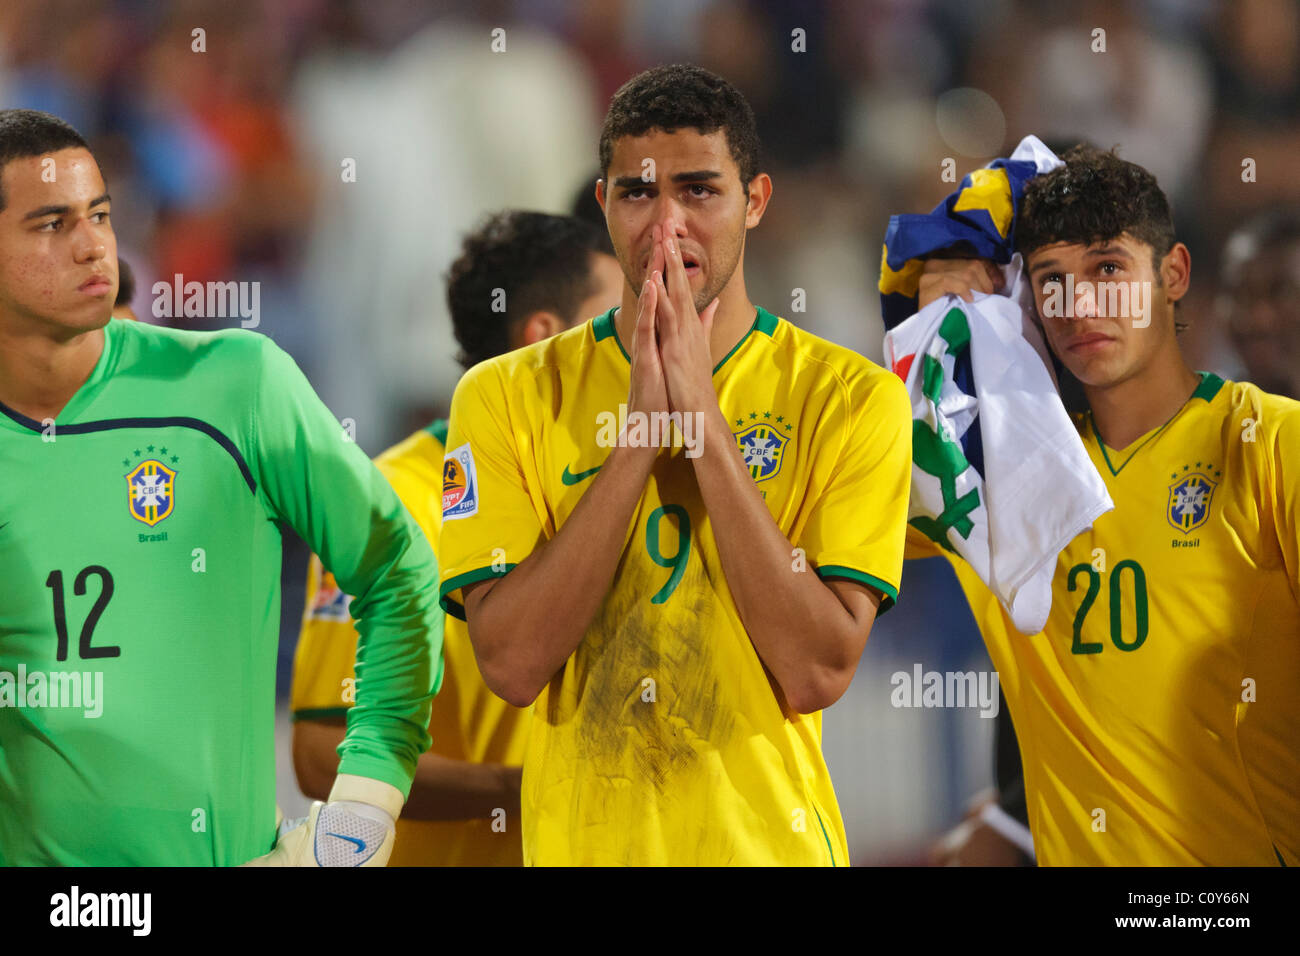 Brazil players Renan Ribeiro (12), Alan Kardec (9) and Ciro (20) react after being defeated by Ghana in the FIFA - Stock Image